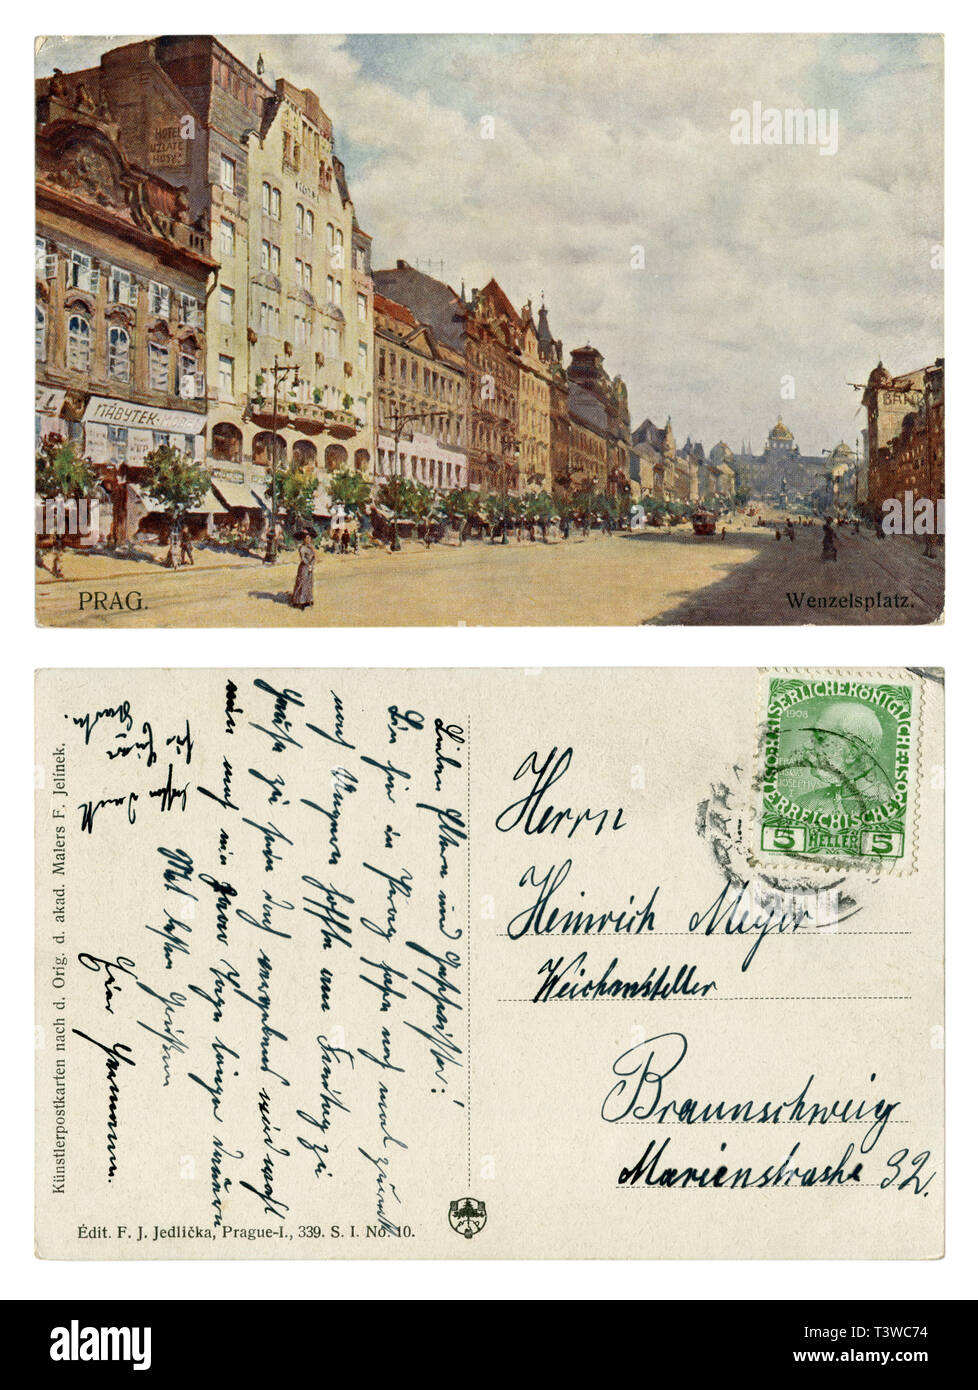 Czech-Austrian historical postcard: Picturesque view of Wenceslas square with houses, hotels, shops and the national Museum. Pedestrians. Tram. 1912 - Stock Image